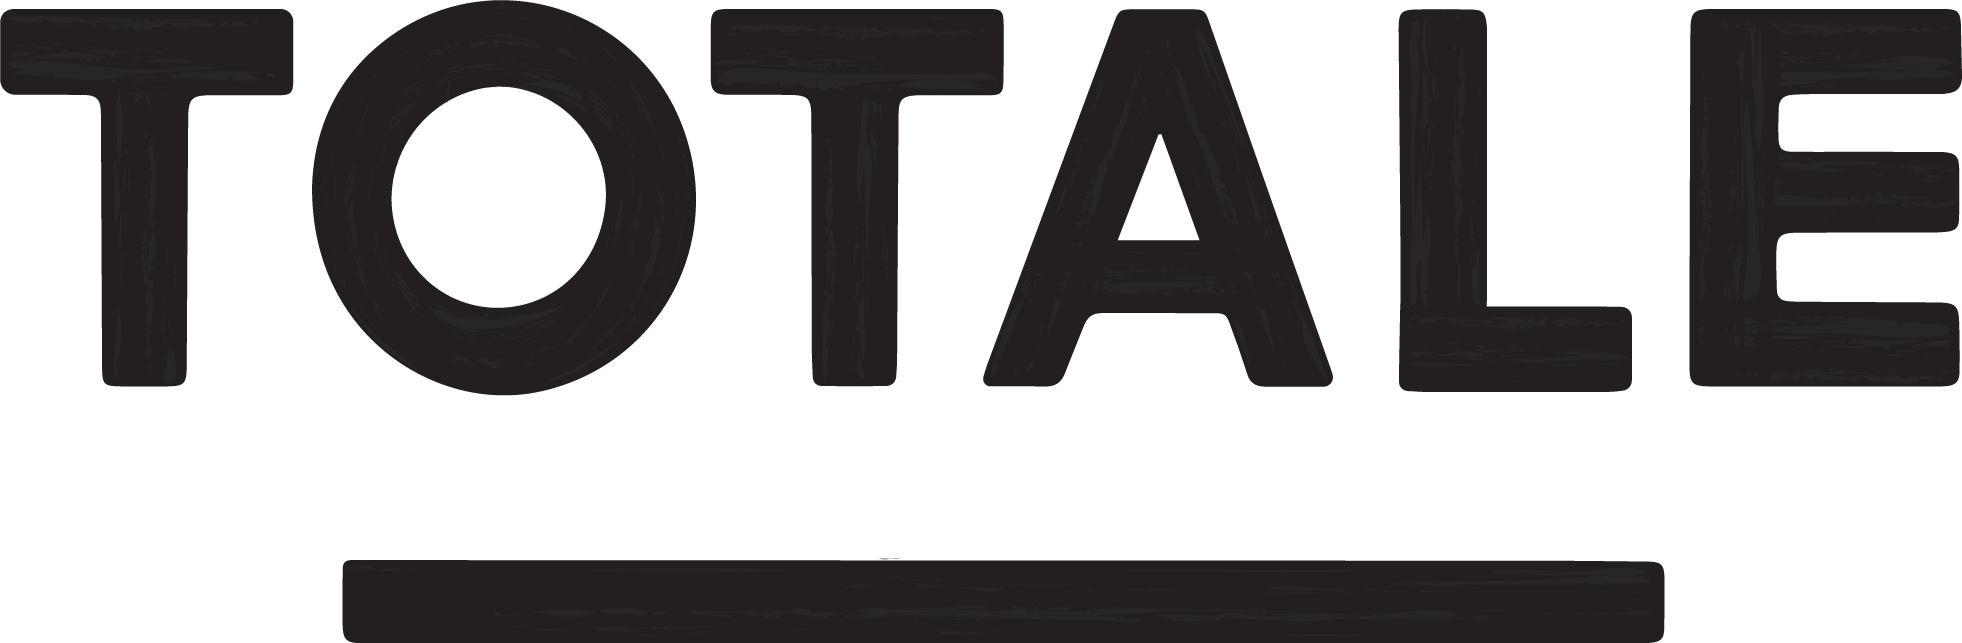 totale-logo.png